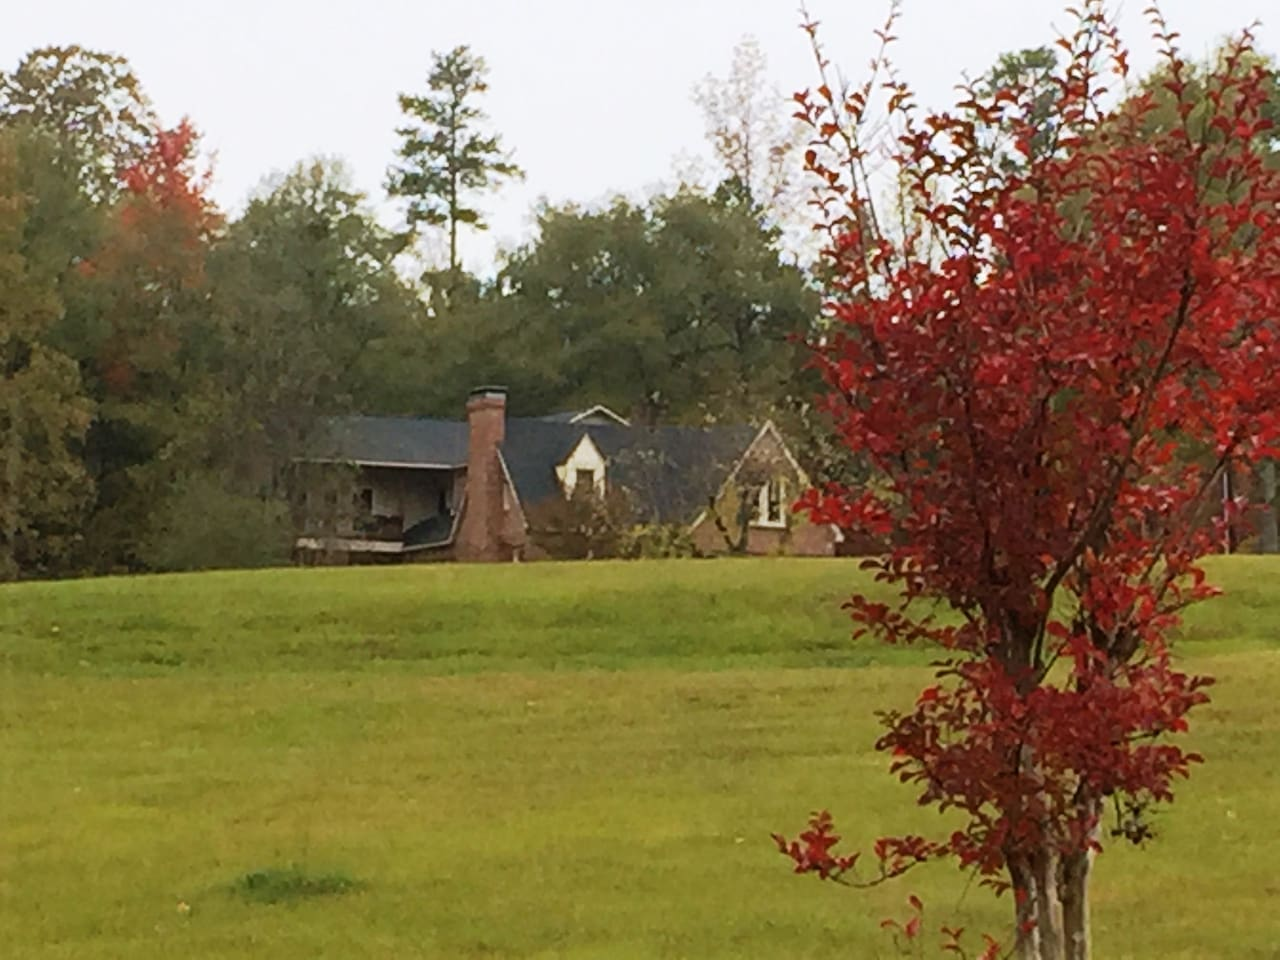 Charming Quiet Place near Rock Hill and Charlotte - Houses for Rent ...